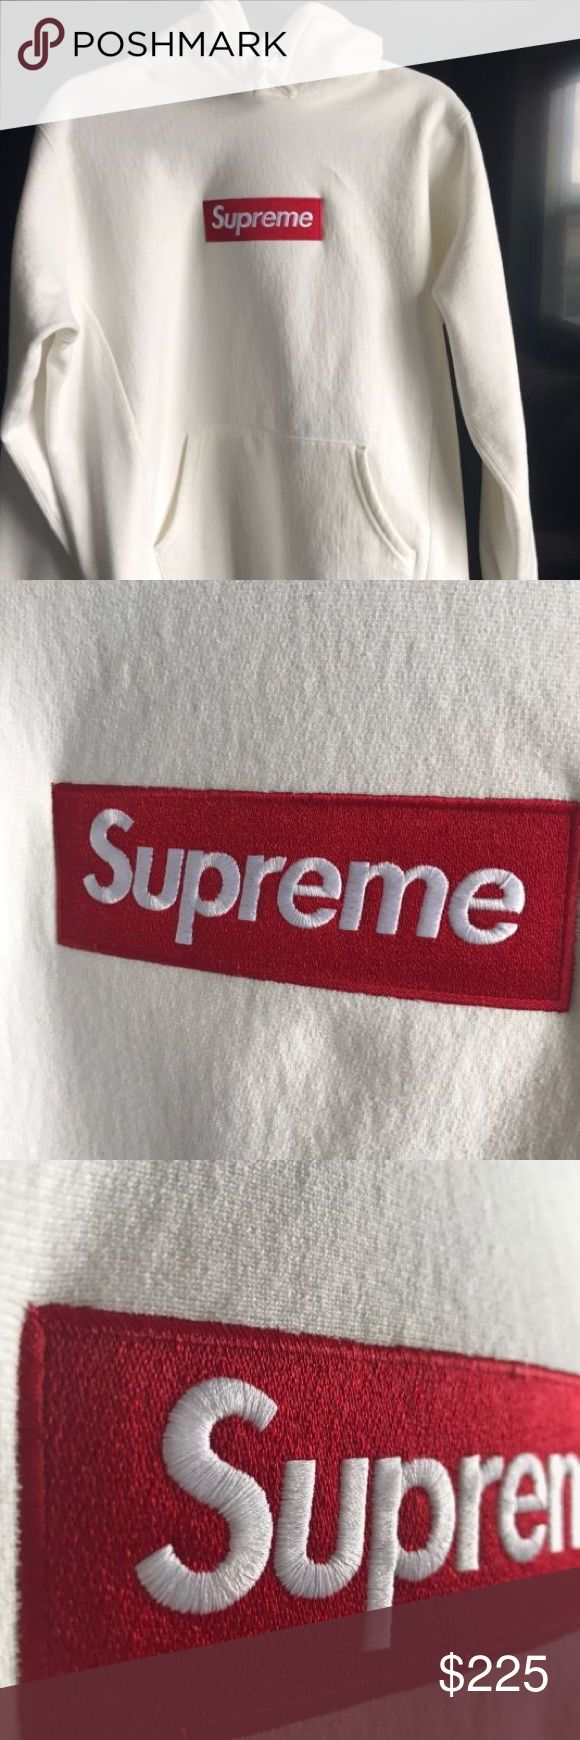 White and Red Supreme BOGO Hoodie 2016 Brand New looking to sell quick pm me if interested!!! #palace#supreme#bape Supreme Tops Sweatshirts & Hoodies